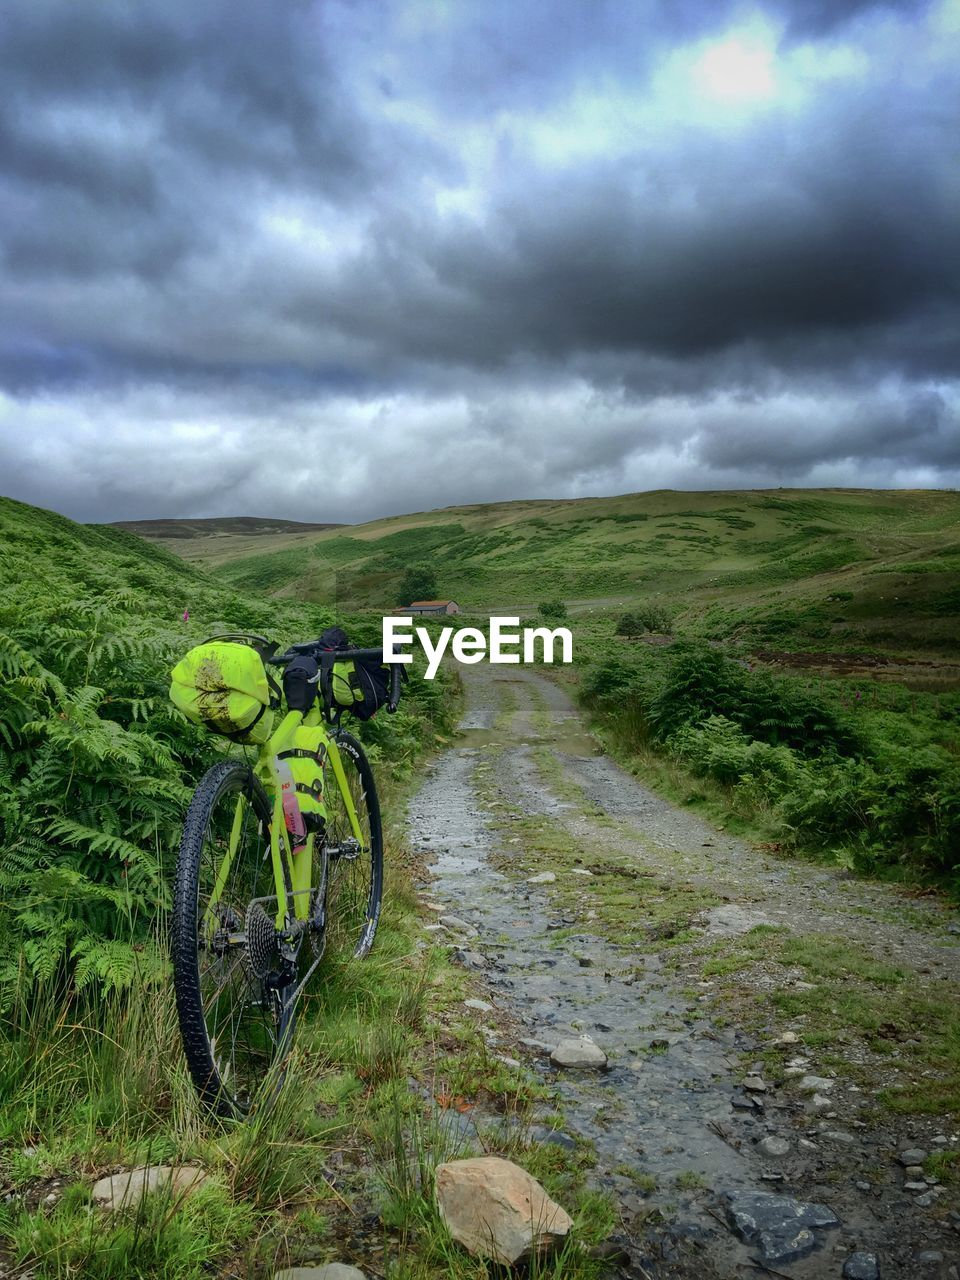 Mountain Bicycle Parked Beside Dirt Road In Dramatic Landscape